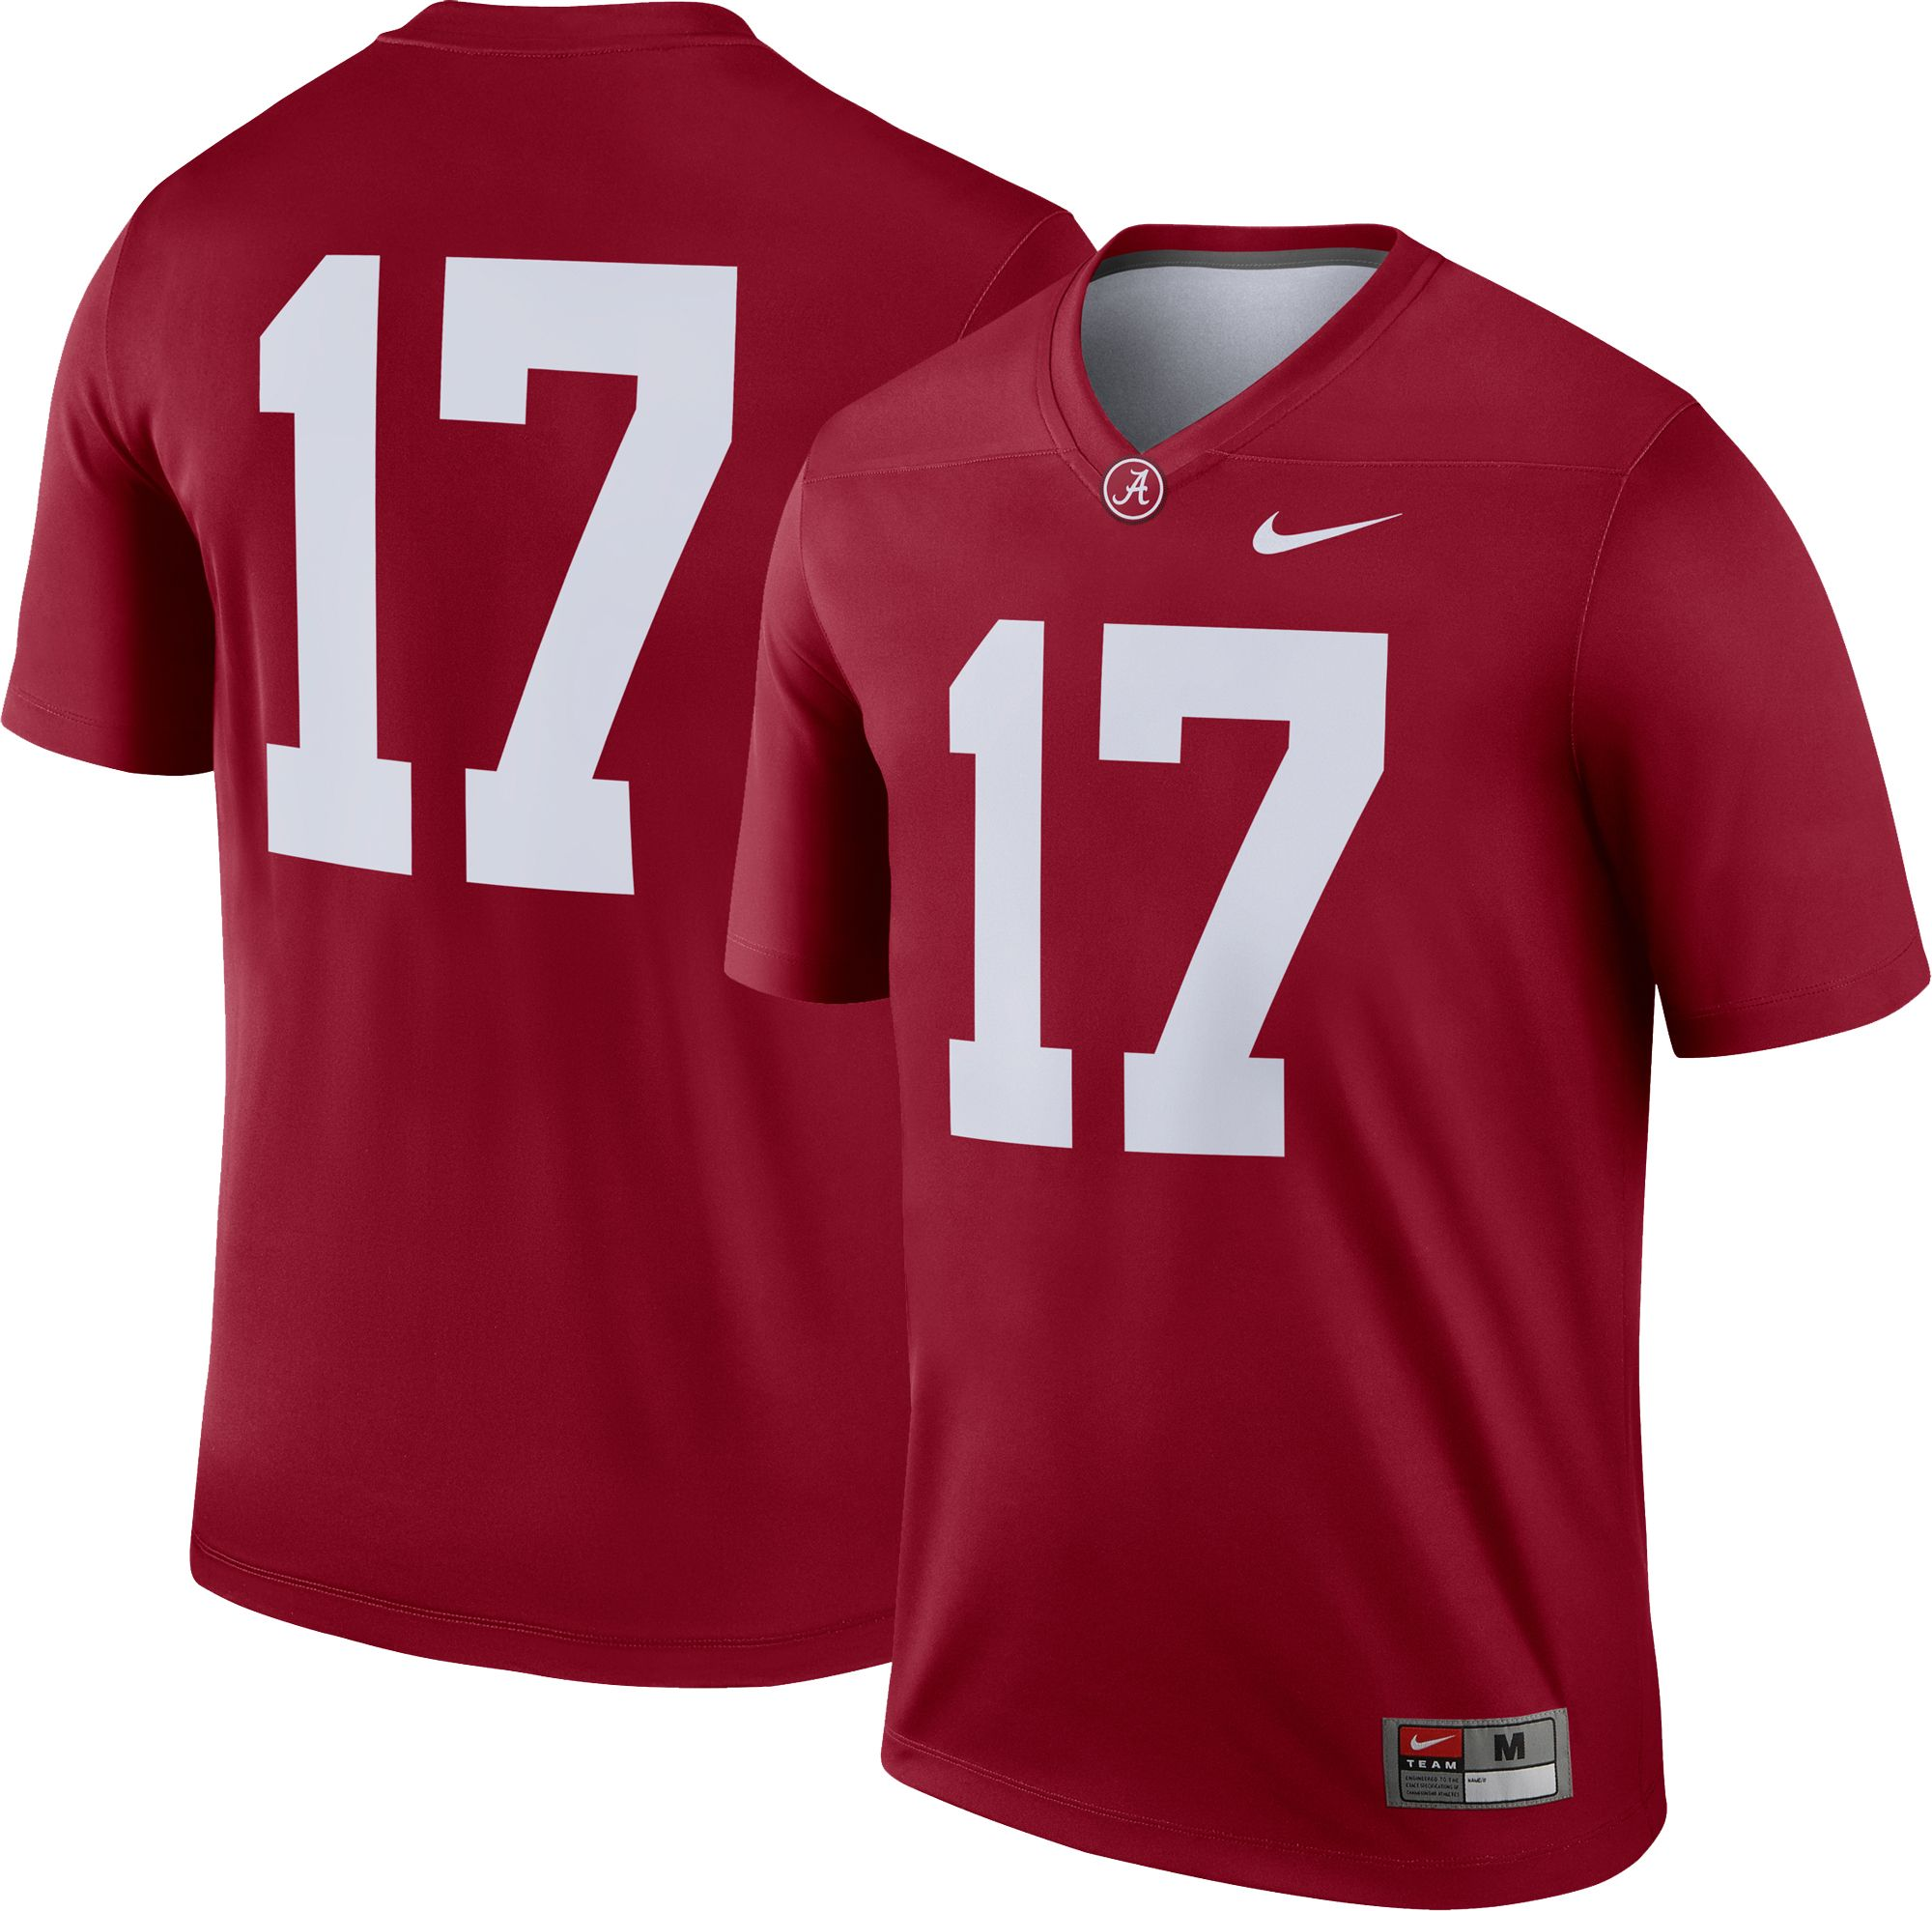 Nike Men's Alabama Crimson Tide #17